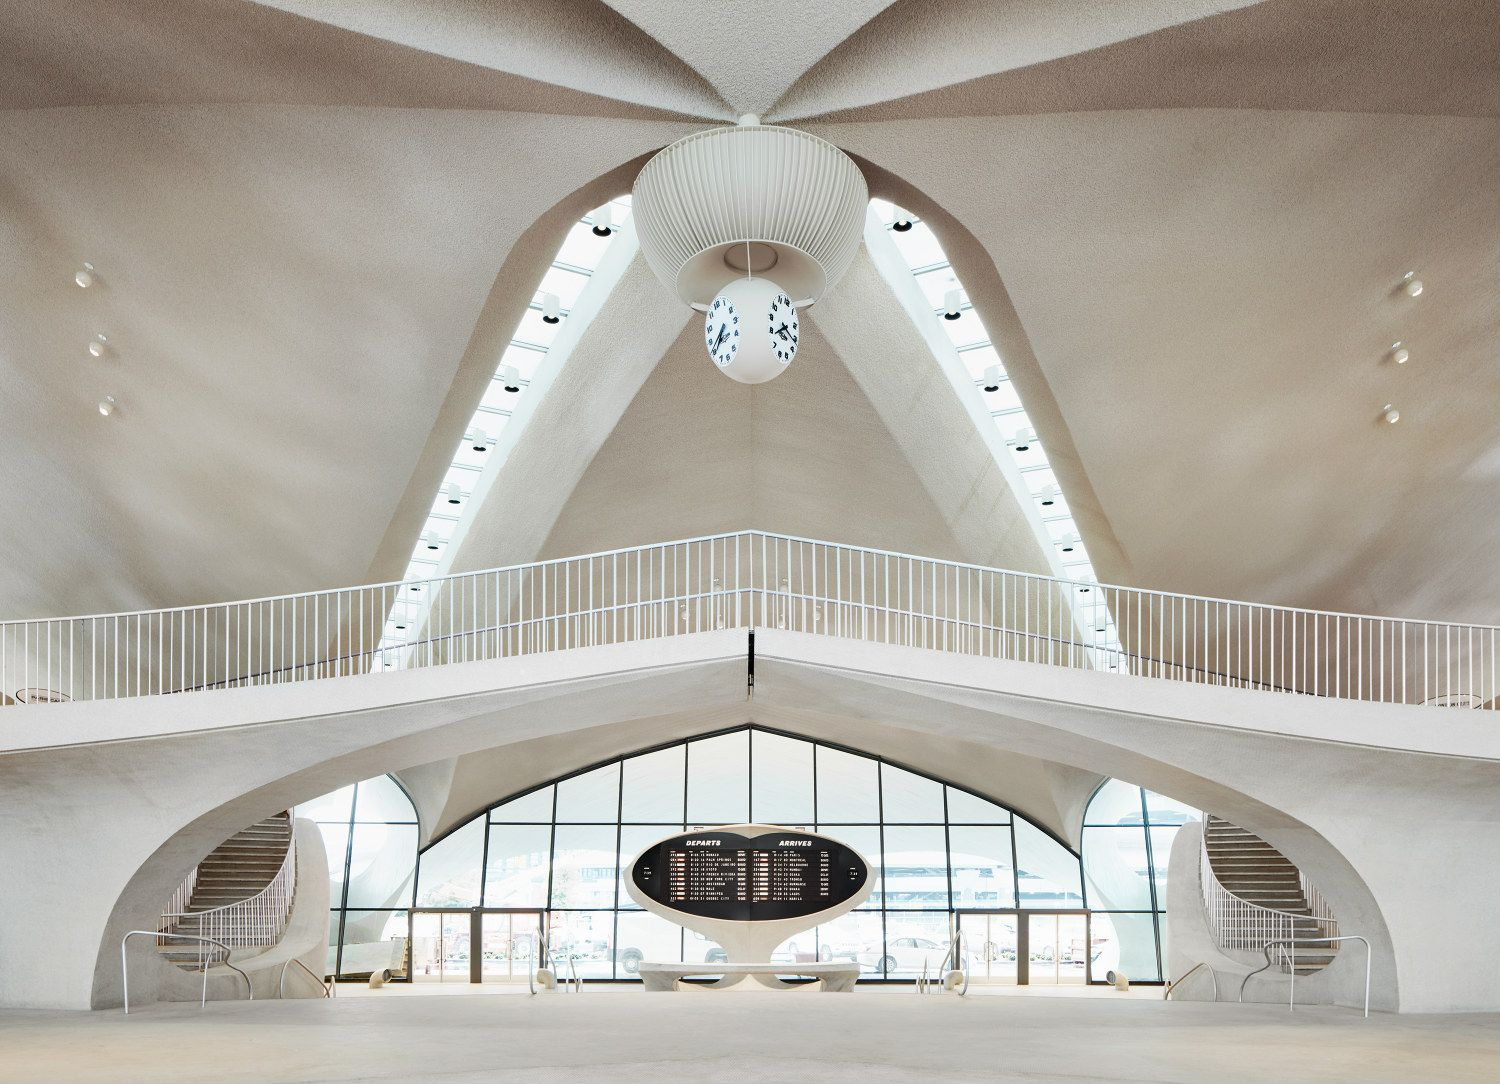 4 Reasons To Visit New York's TWA Hotel